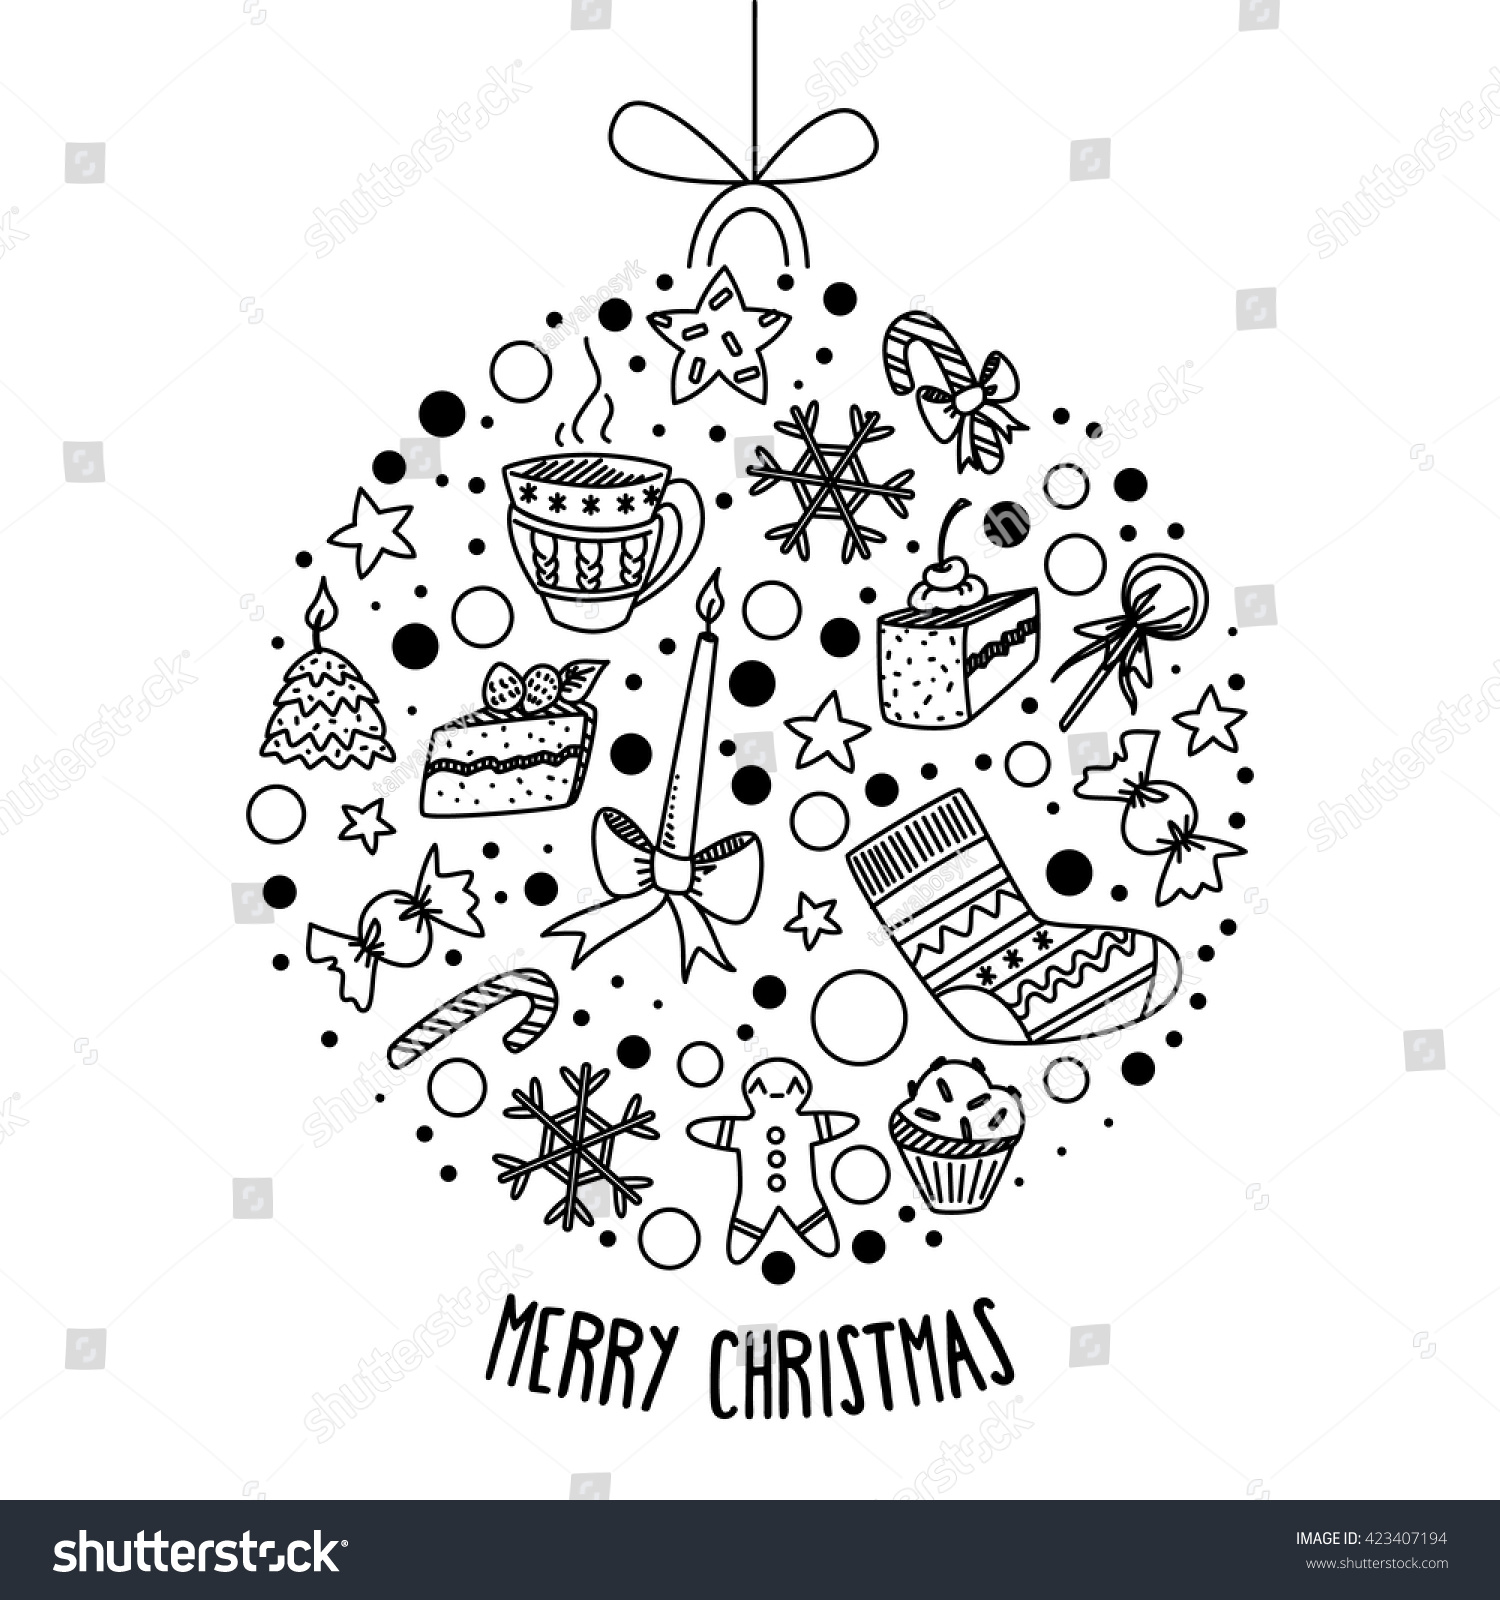 Merry christmas doodle card invitation round stock vector 423407194 merry christmas doodle card invitation round shape with different elements black on white background stopboris Images